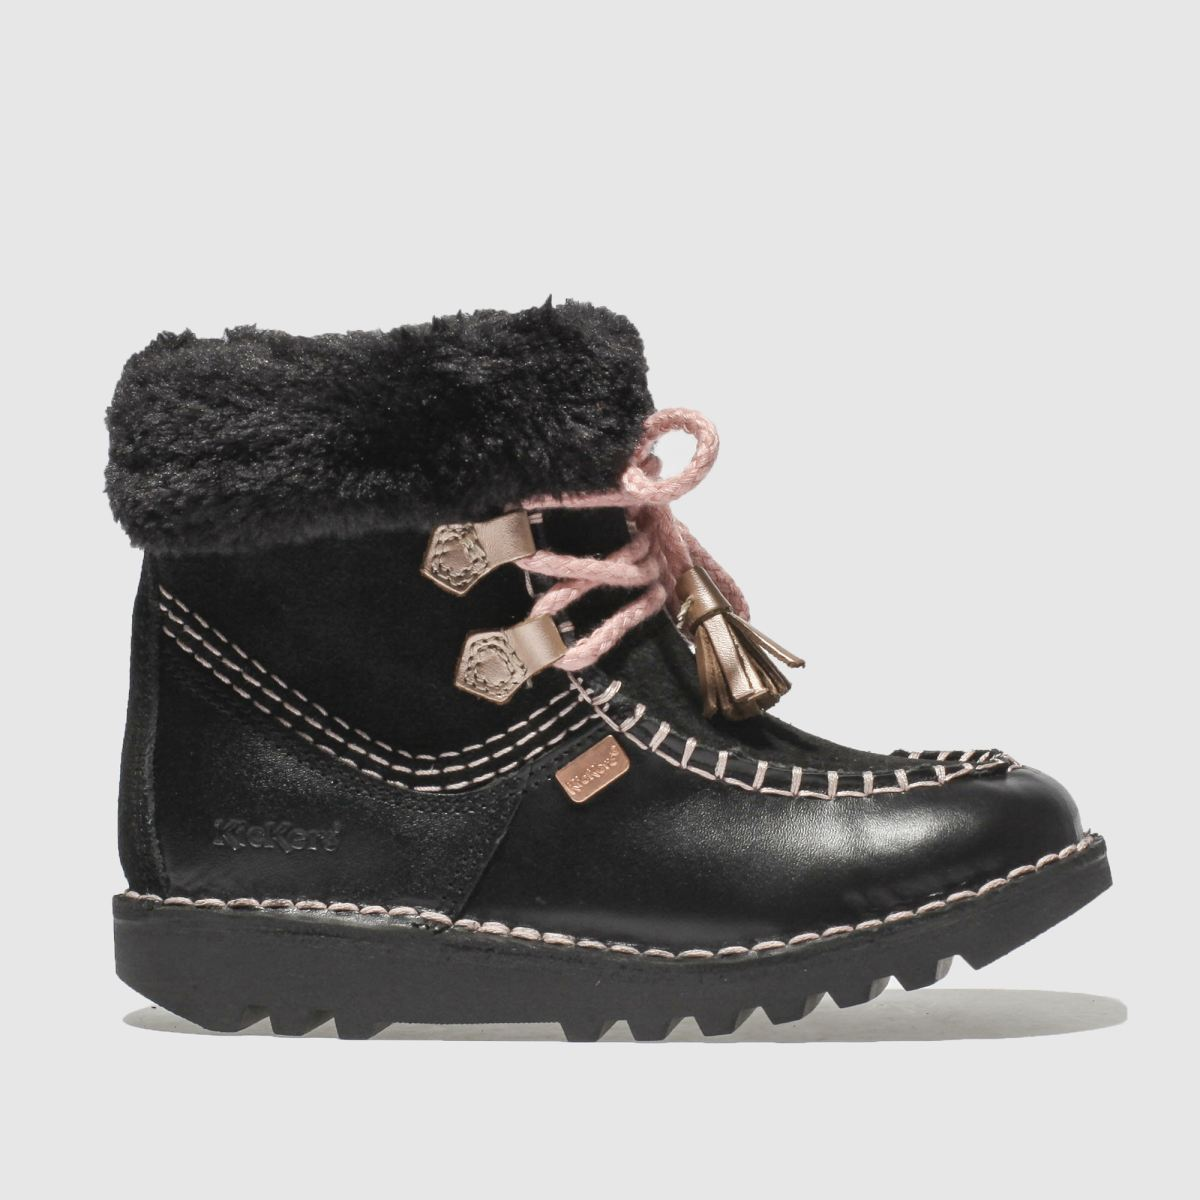 Kickers Black & Pink Fur Wallee Boots Toddler